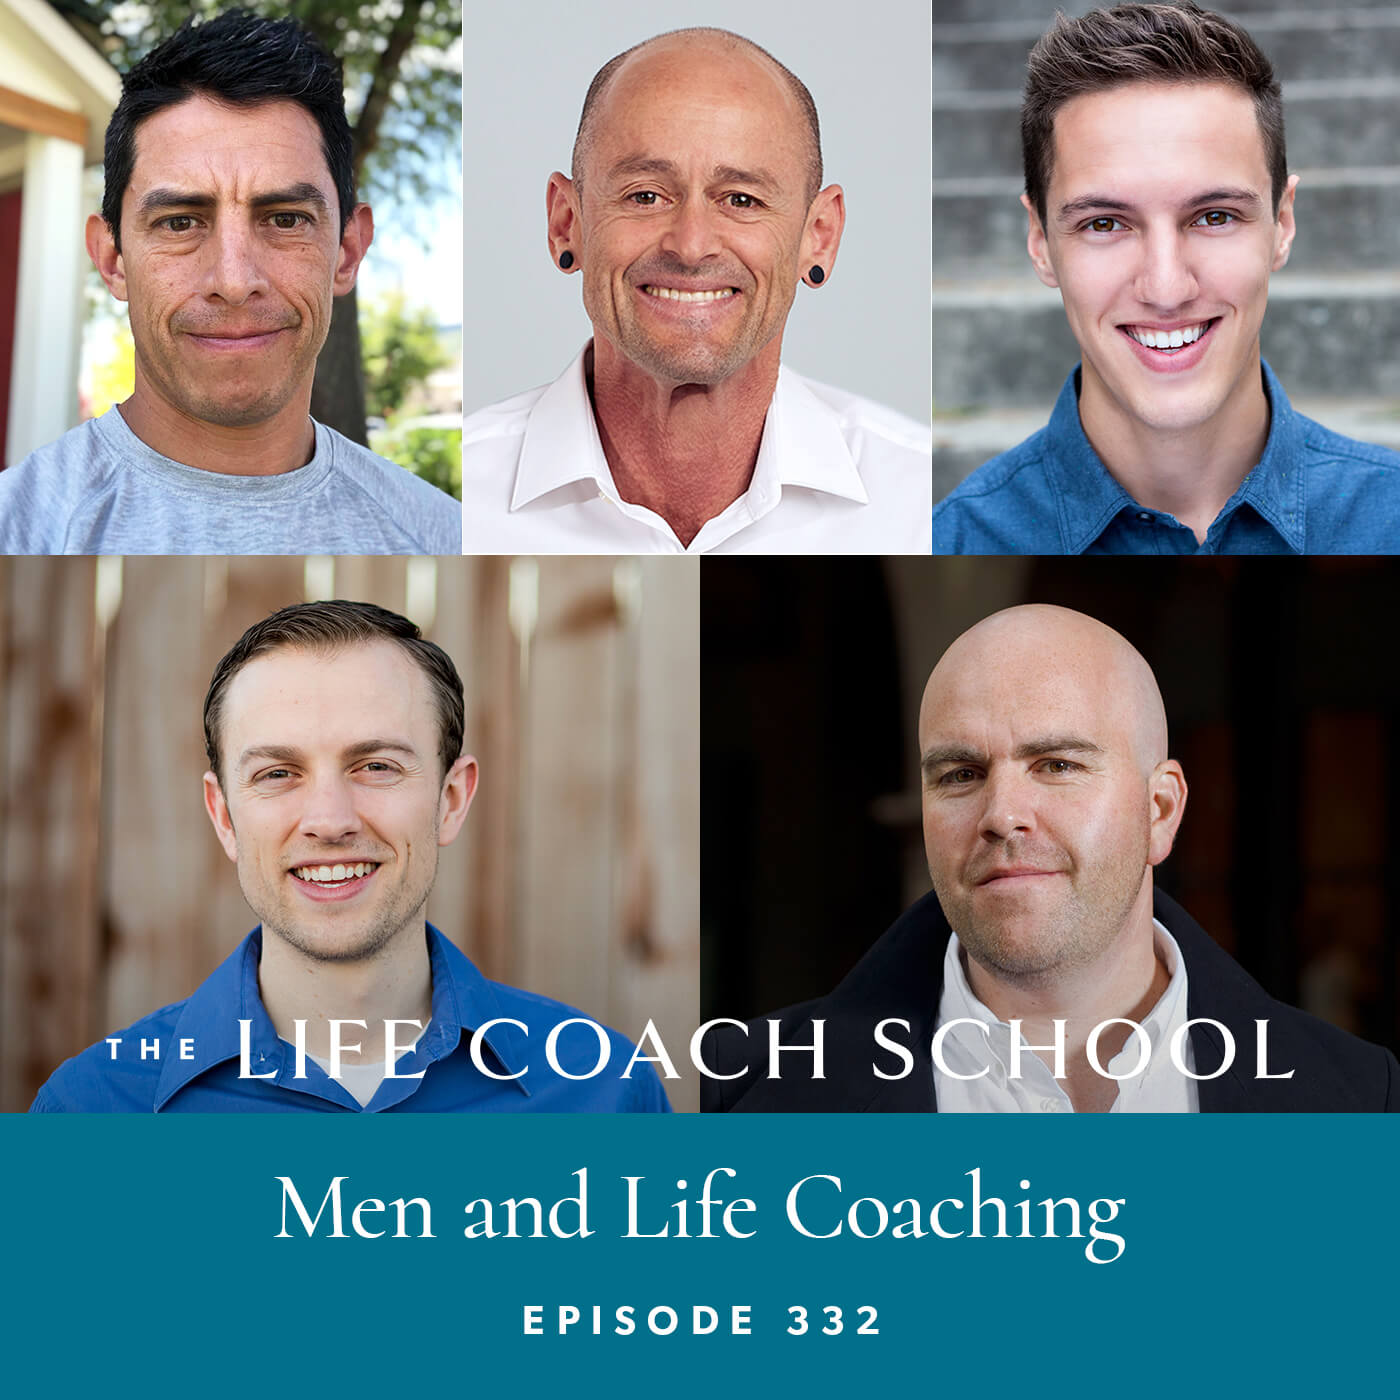 The Life Coach School Podcast with Brooke Castillo | Episode 332 | Men and Life Coaching